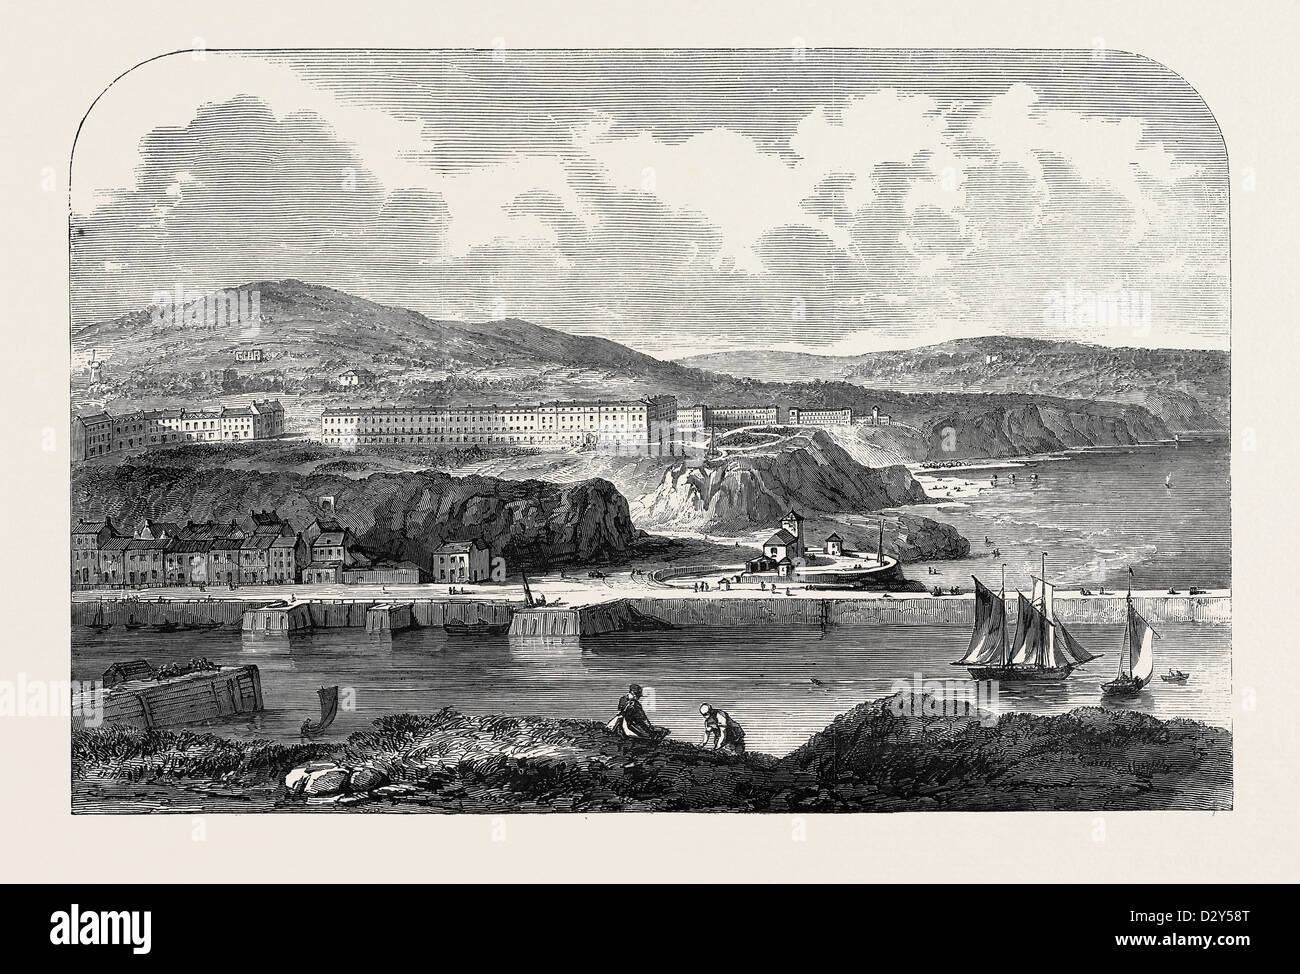 WHITBY, YORKSHIRE, 1852 - Stock Image